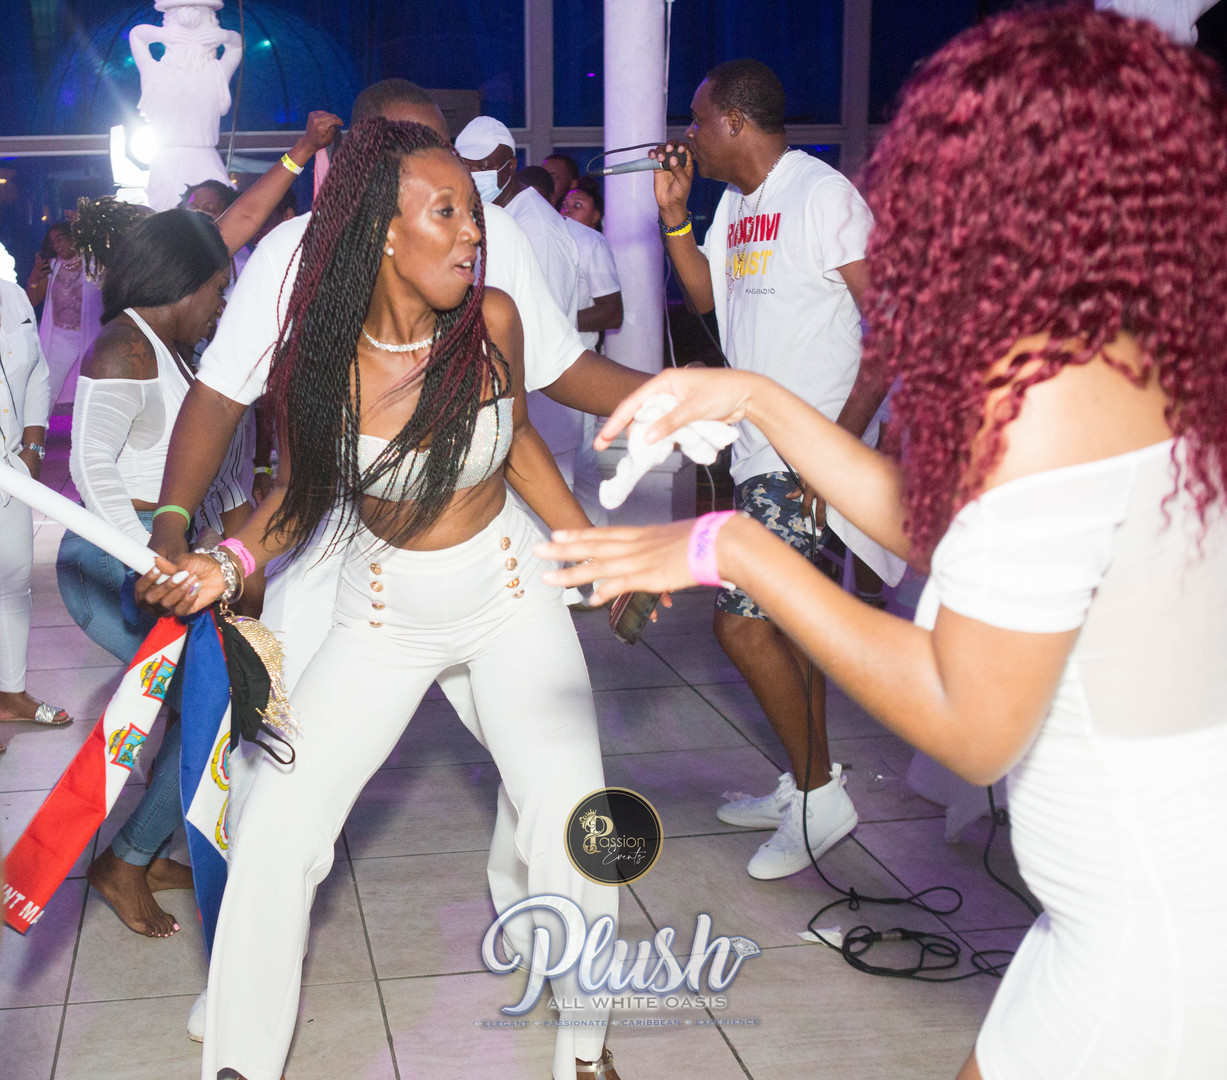 Soca_Passion-PLUSH 9234.JPG